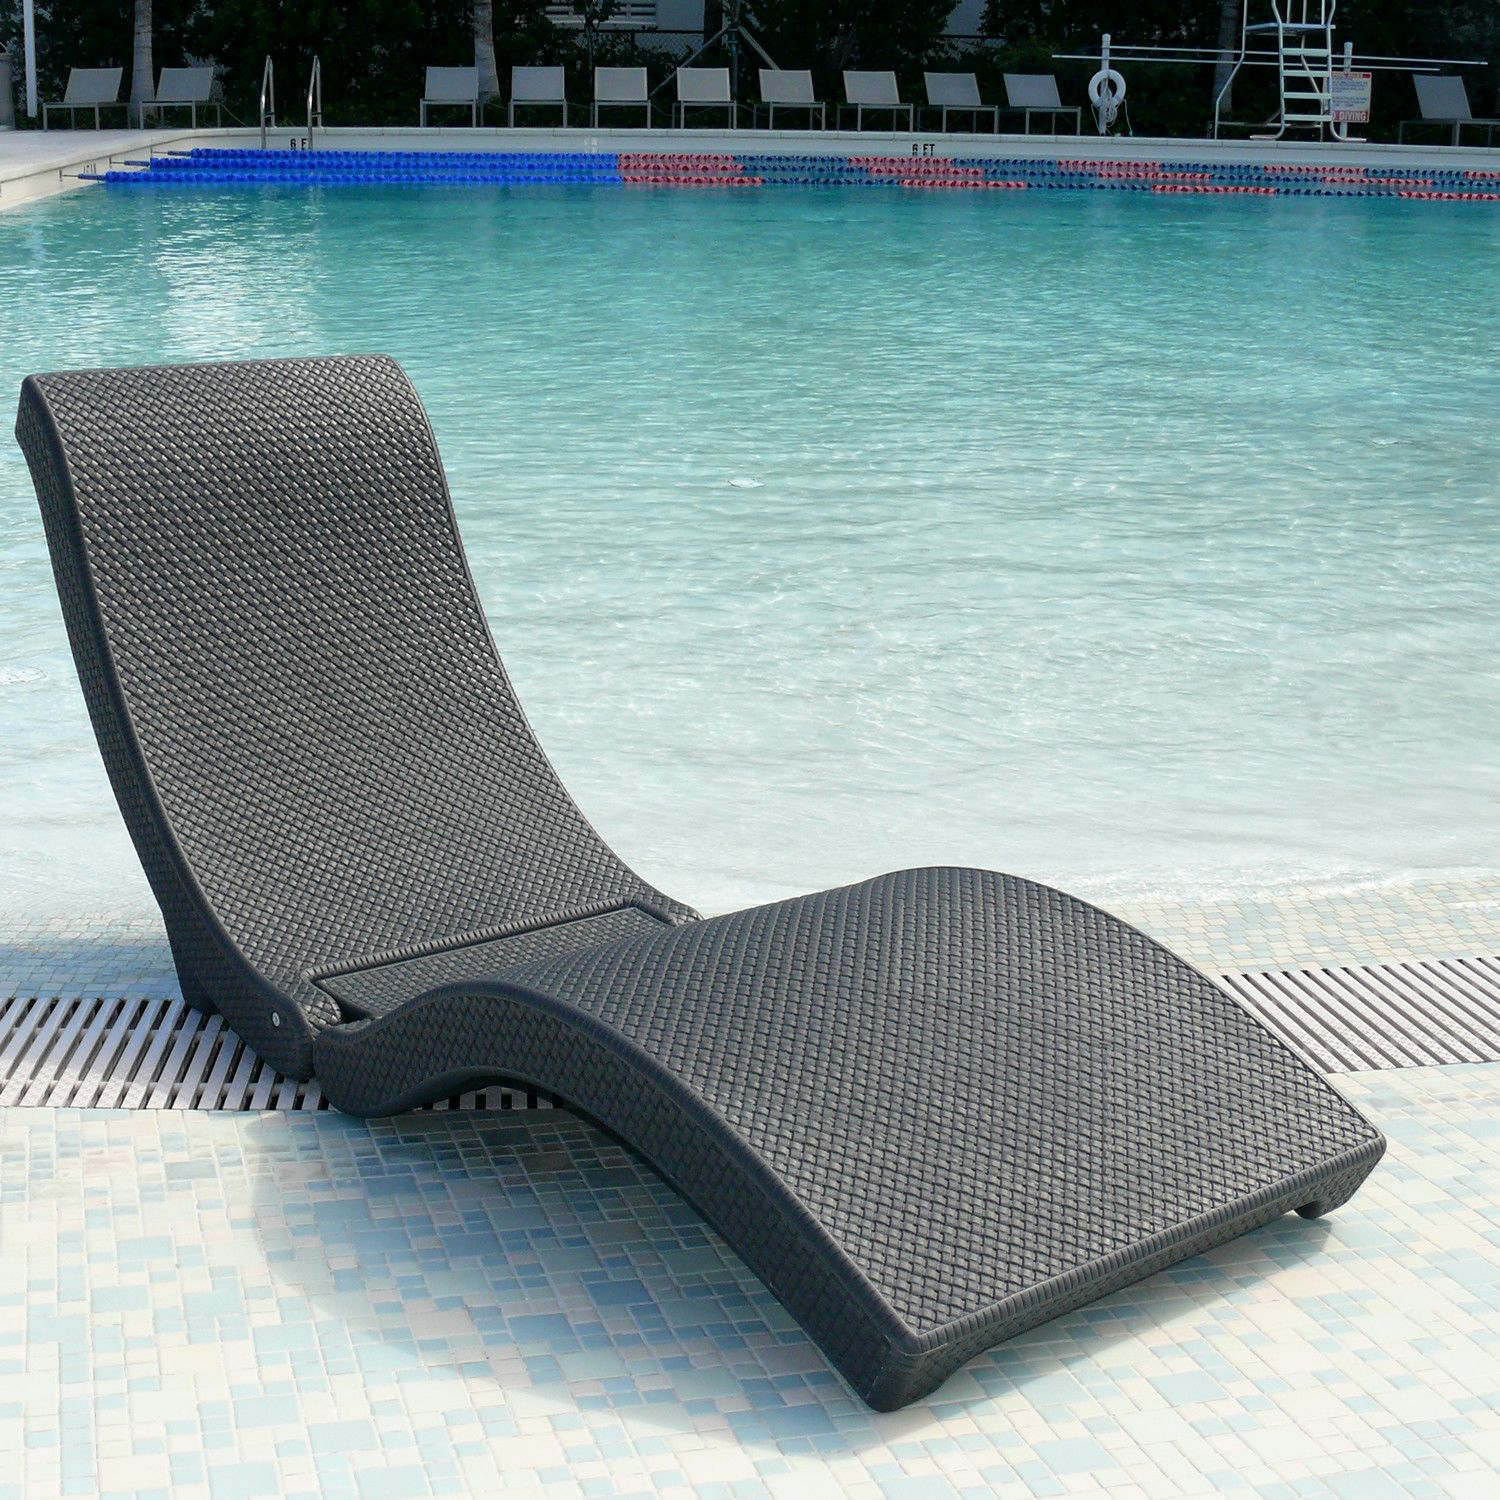 Water In Pool Chaise Lounge Chairs Outdoor Furniture Pinterest Chaise Lounges